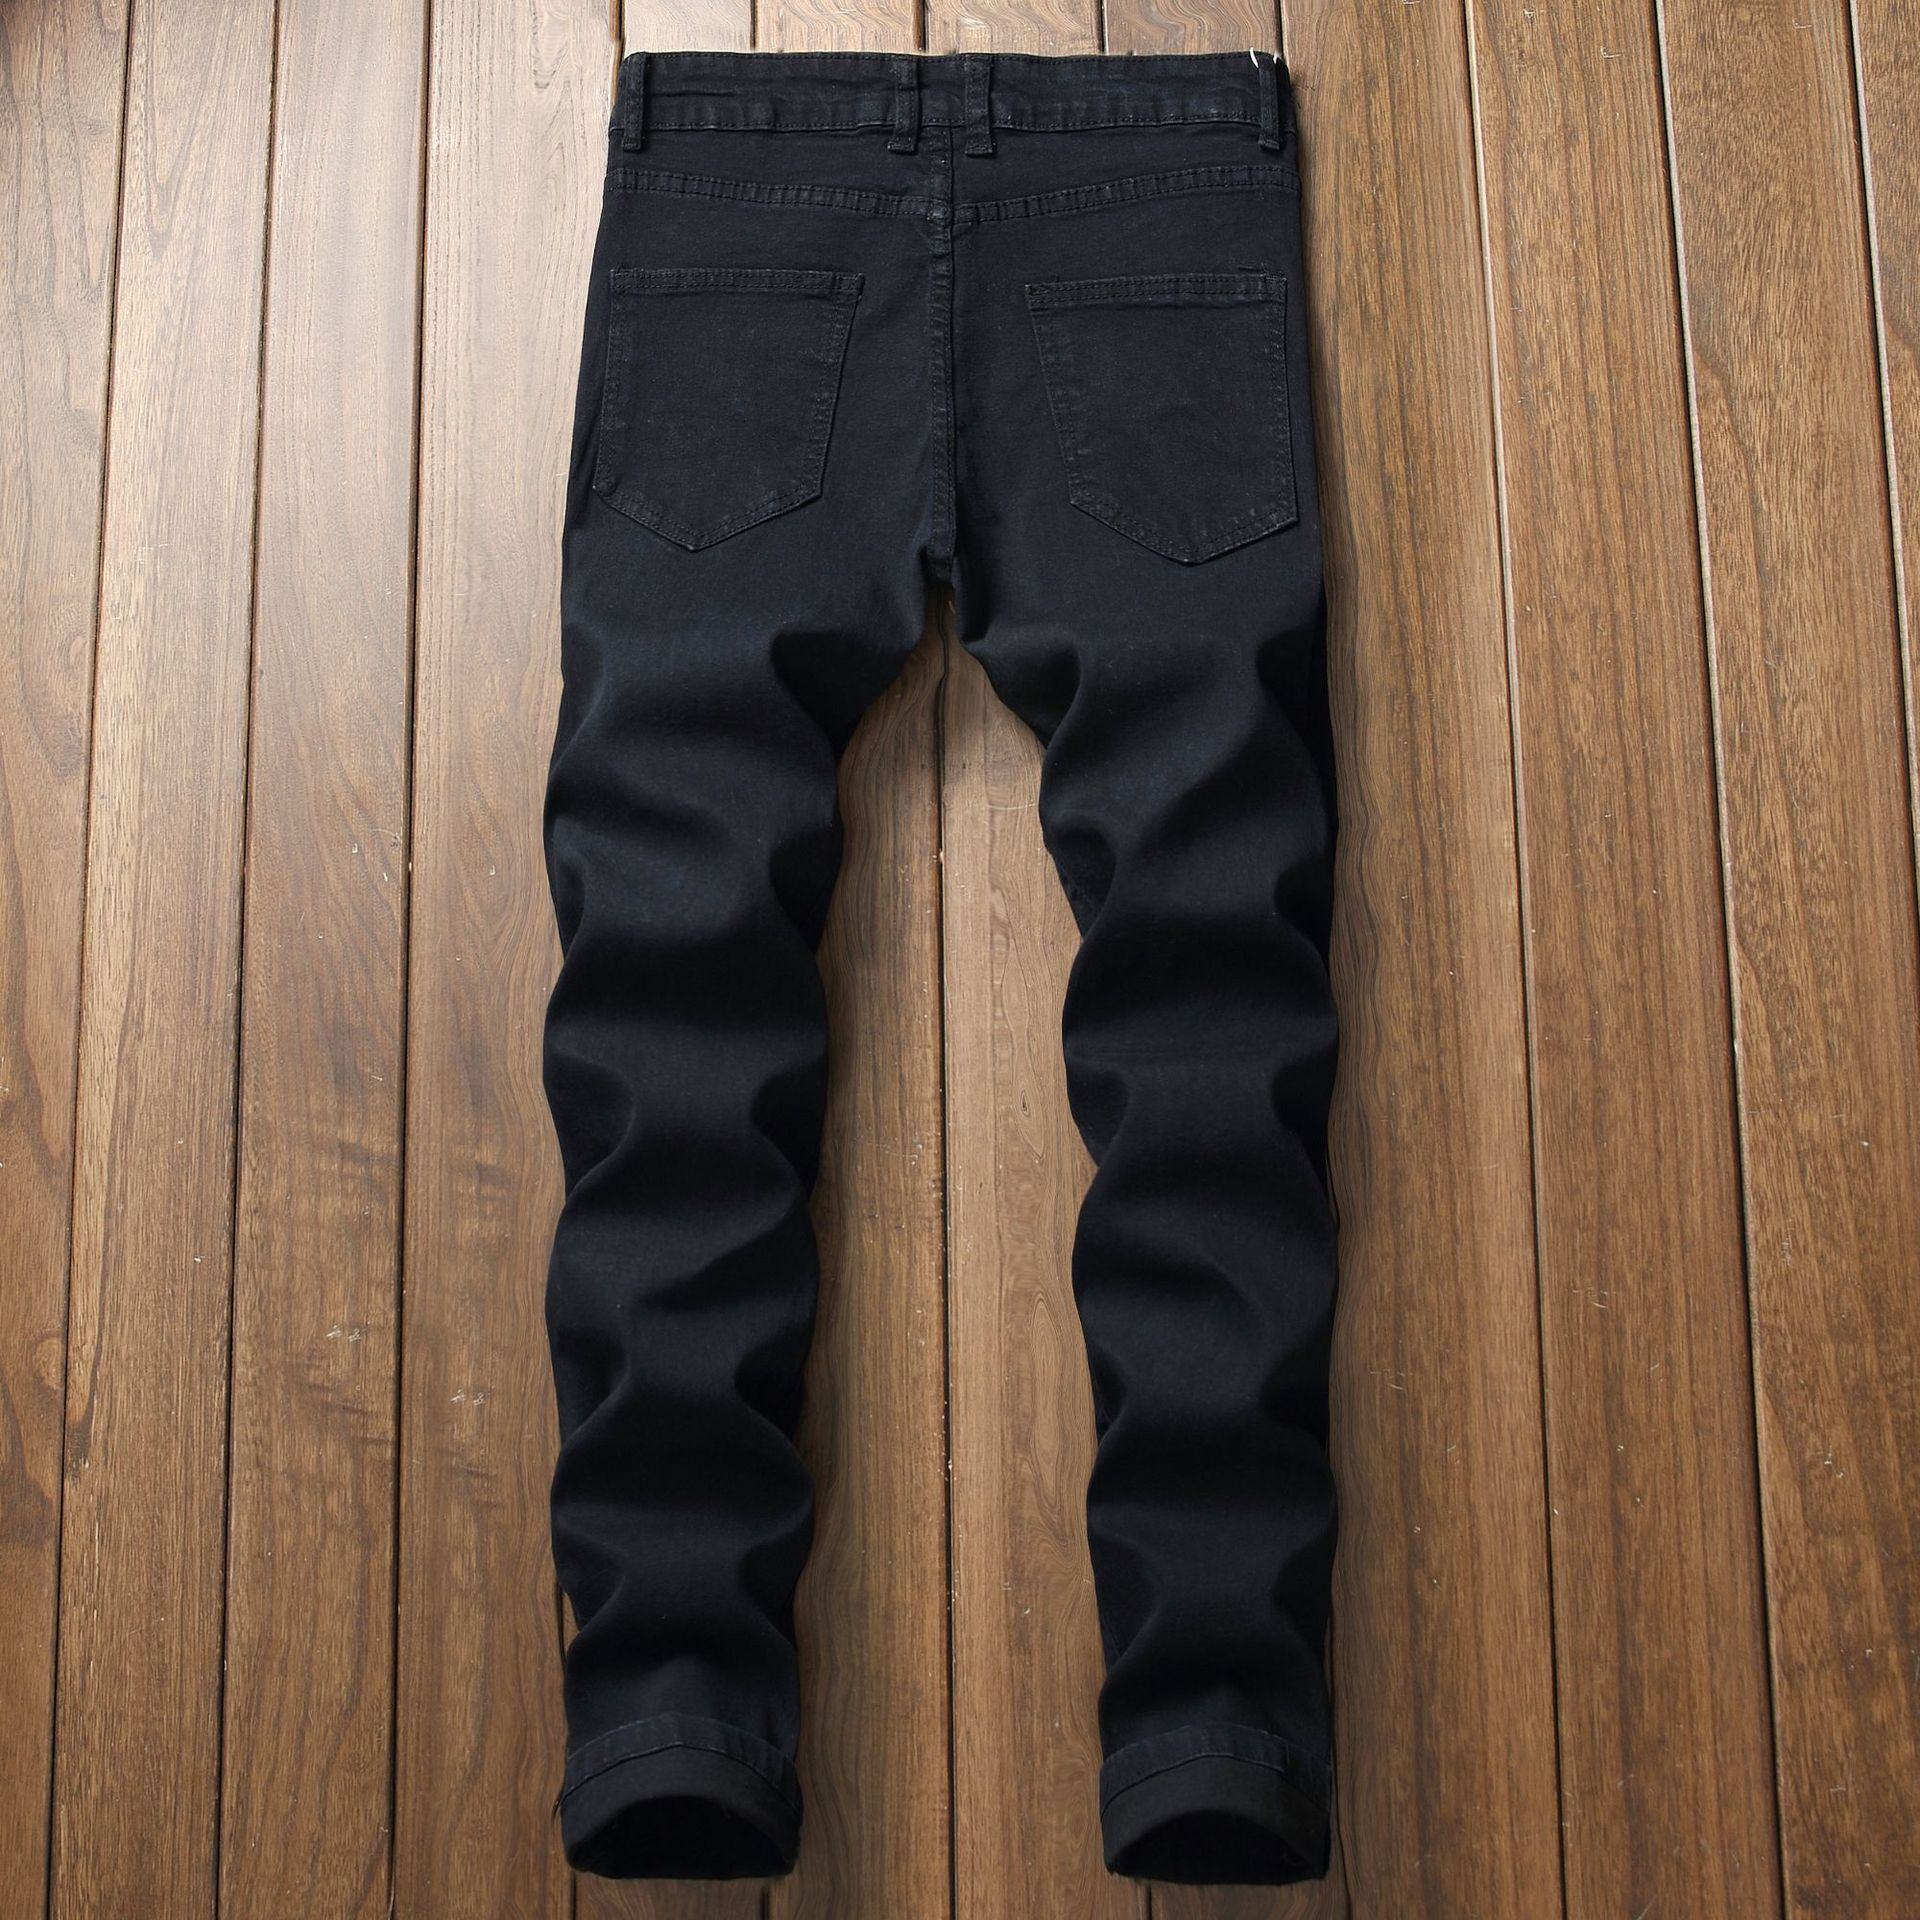 Men With Holes Slim Fit Pants Embroidery Black Jeans Trend Of Fashion Men's Stretch Pants